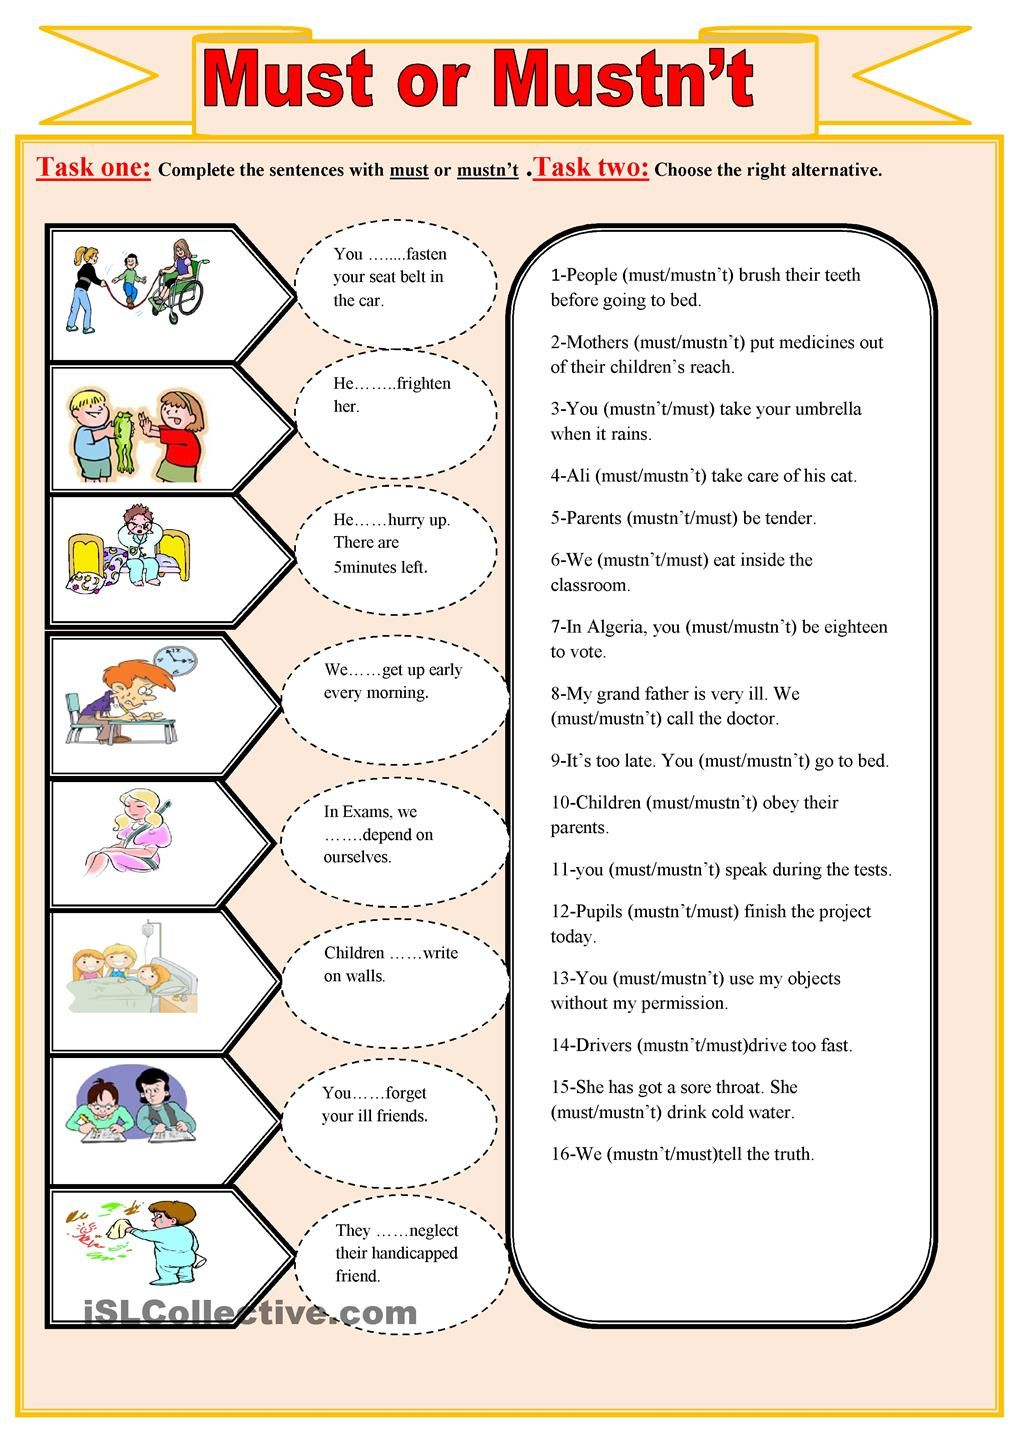 moreover Modal verbs can can´t must mustn´t should shouldn´t    ESL worksheet together with Modal Verbs  Printable modals exercises and worksheets furthermore Must  Mustn´t   ESL worksheet by Diana Parracho together with Modal Verbs and Traffic Signs 2   Interactive worksheet in addition Modal Verbs ESL Printable Worksheets and Exercises additionally  in addition  moreover How to Teach May  Might  Could  Must   Off2Cl together with Grammar exercises  1   Match each sentence with the meaning implied also Modal verbs   MUST or MUSTN T worksheet   Free ESL printable moreover Modal Verbs Obligation Prohibition ESL Activities Games Worksheets furthermore question tags worksheet pdf   Purland Training further MUST   MUSTN T   NEEDN T   ESL worksheet by Roo Pacheco also Must Have To Exercises   Unifeed club further must mustn't    Must Mustn't Worksheets   Pinterest   English. on must mustn t worksheet pdf